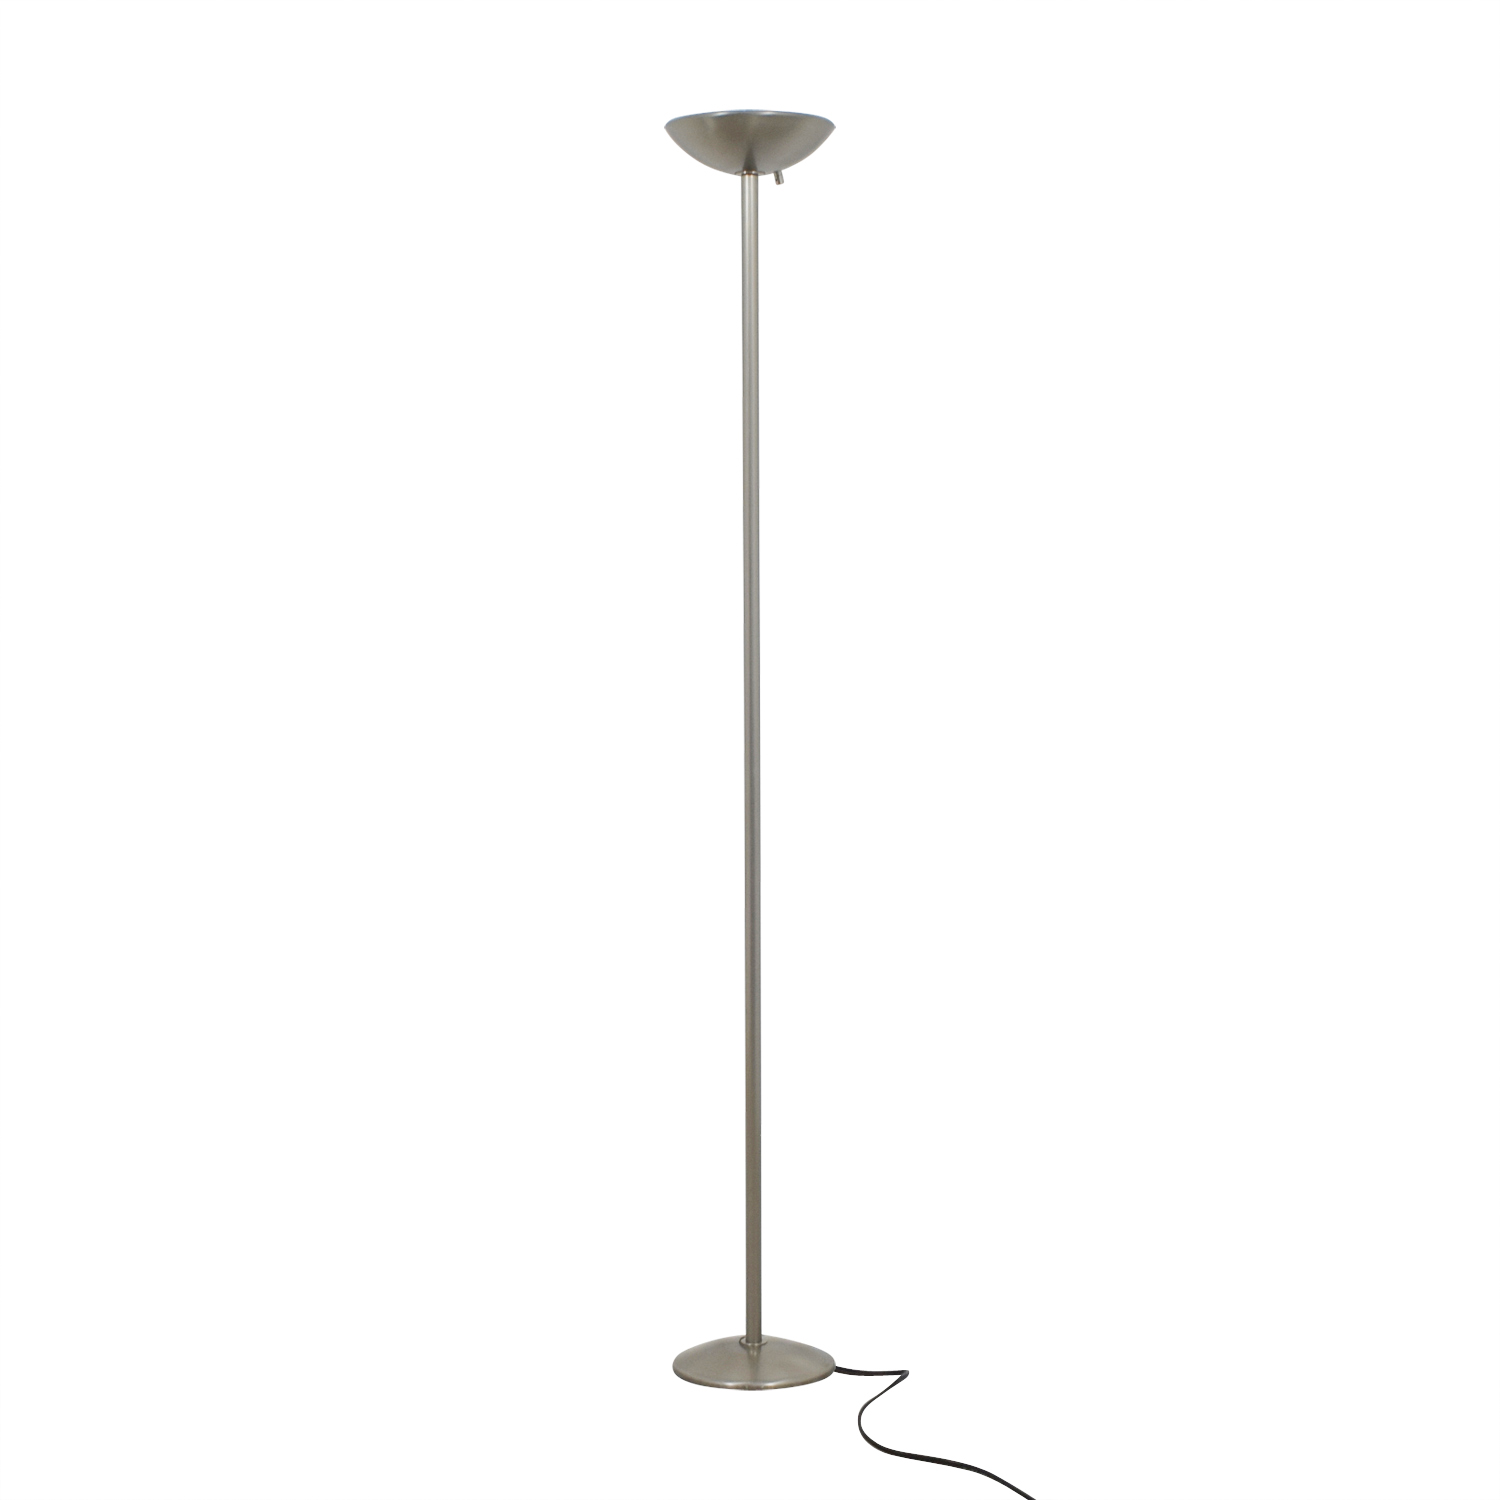 Ligne Roset Ligne Roset Brushed Silver Floor Lamp second hand